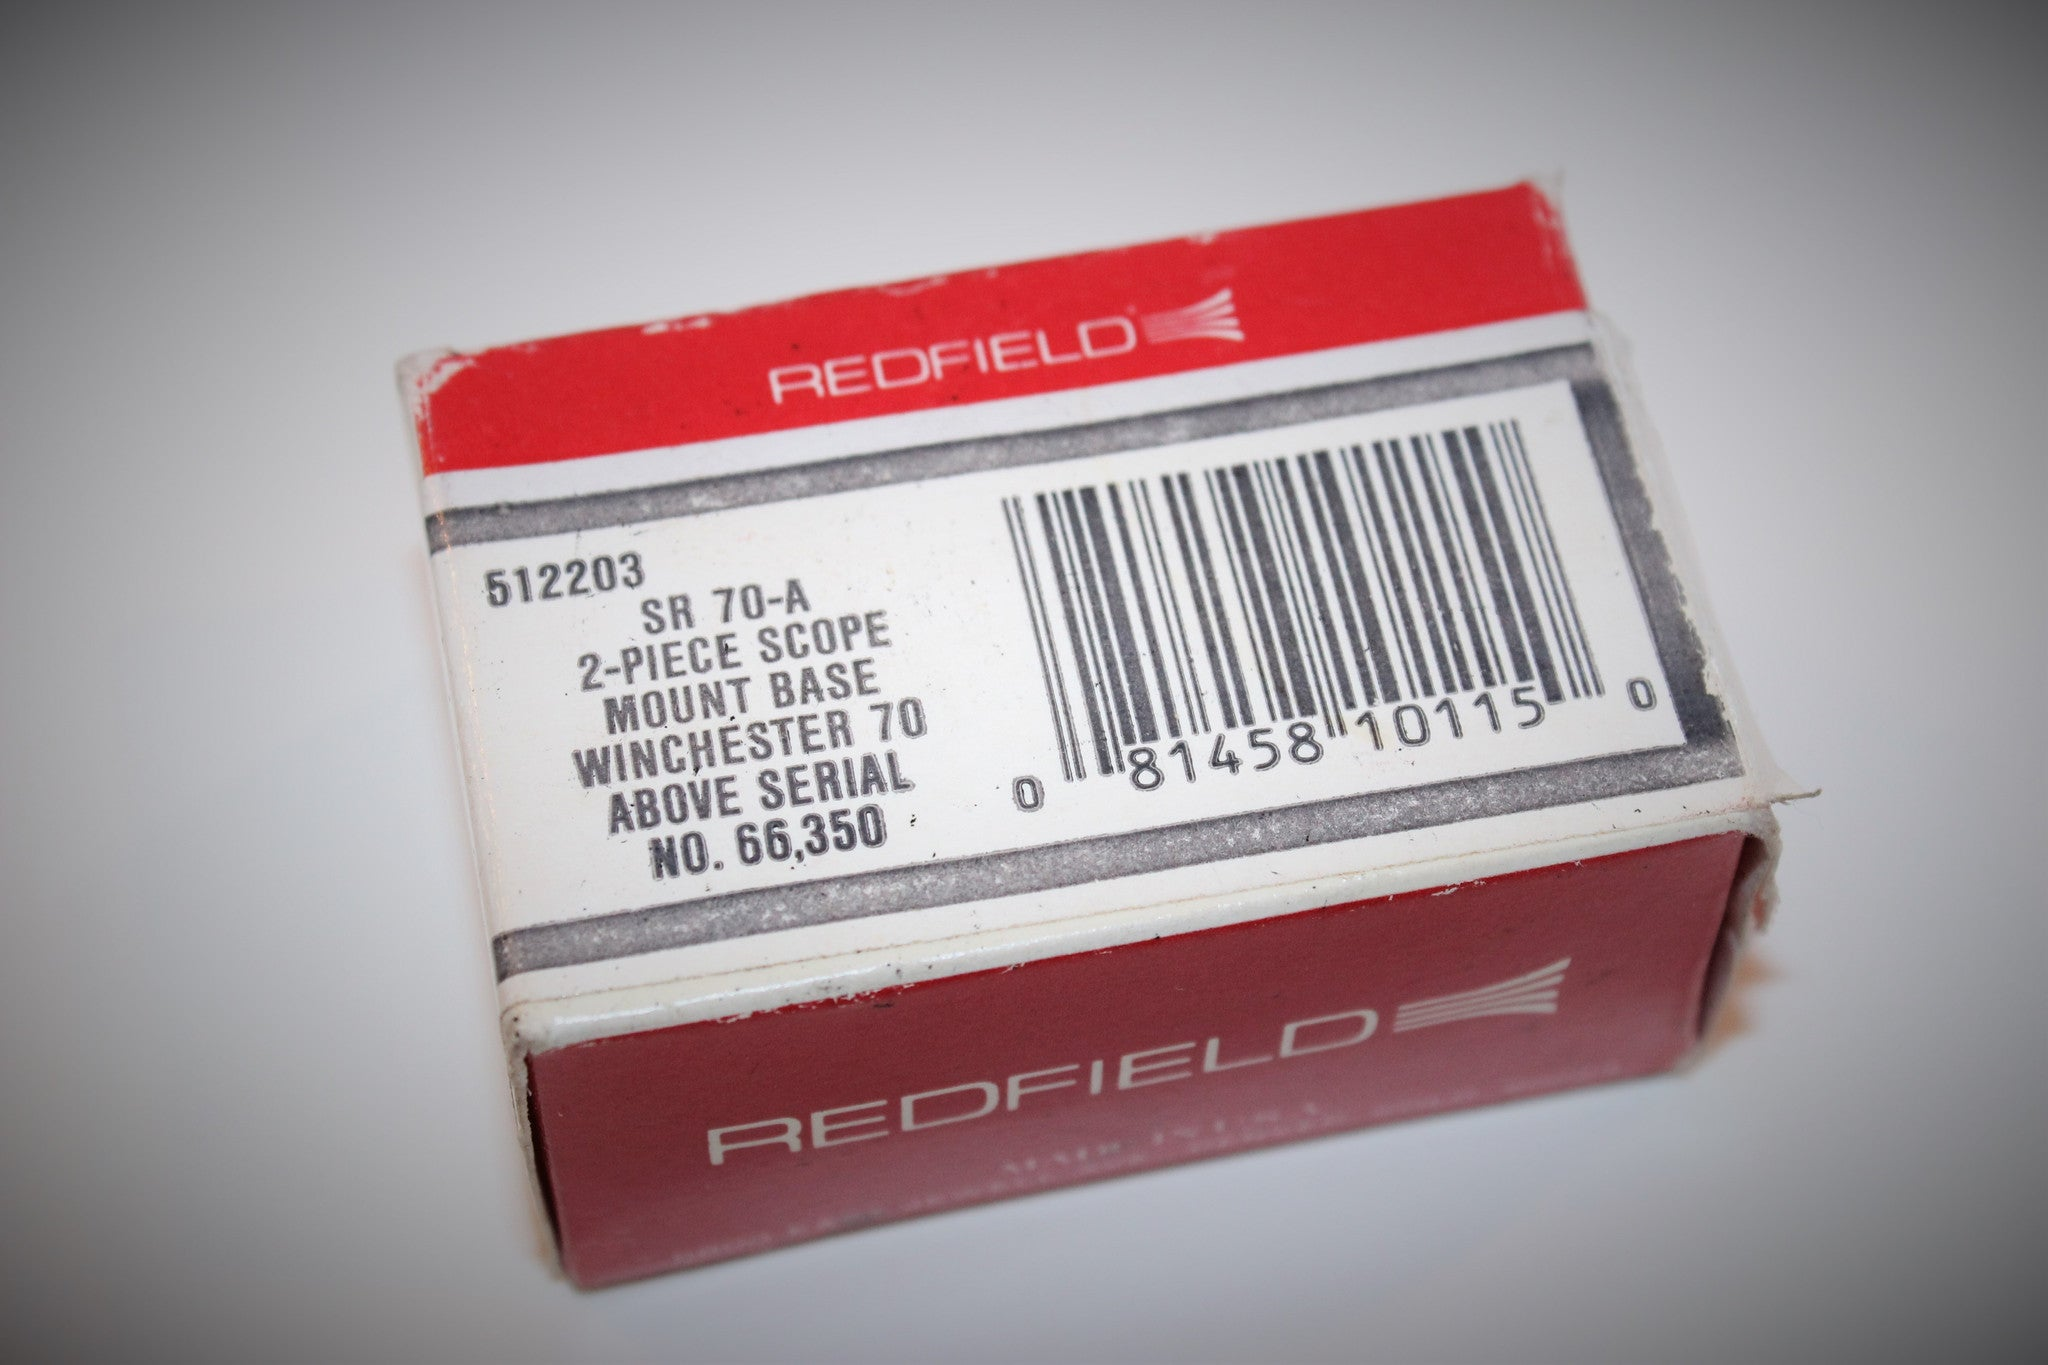 Redfield SR 70-A 2-Piece Scope Mount Base Set